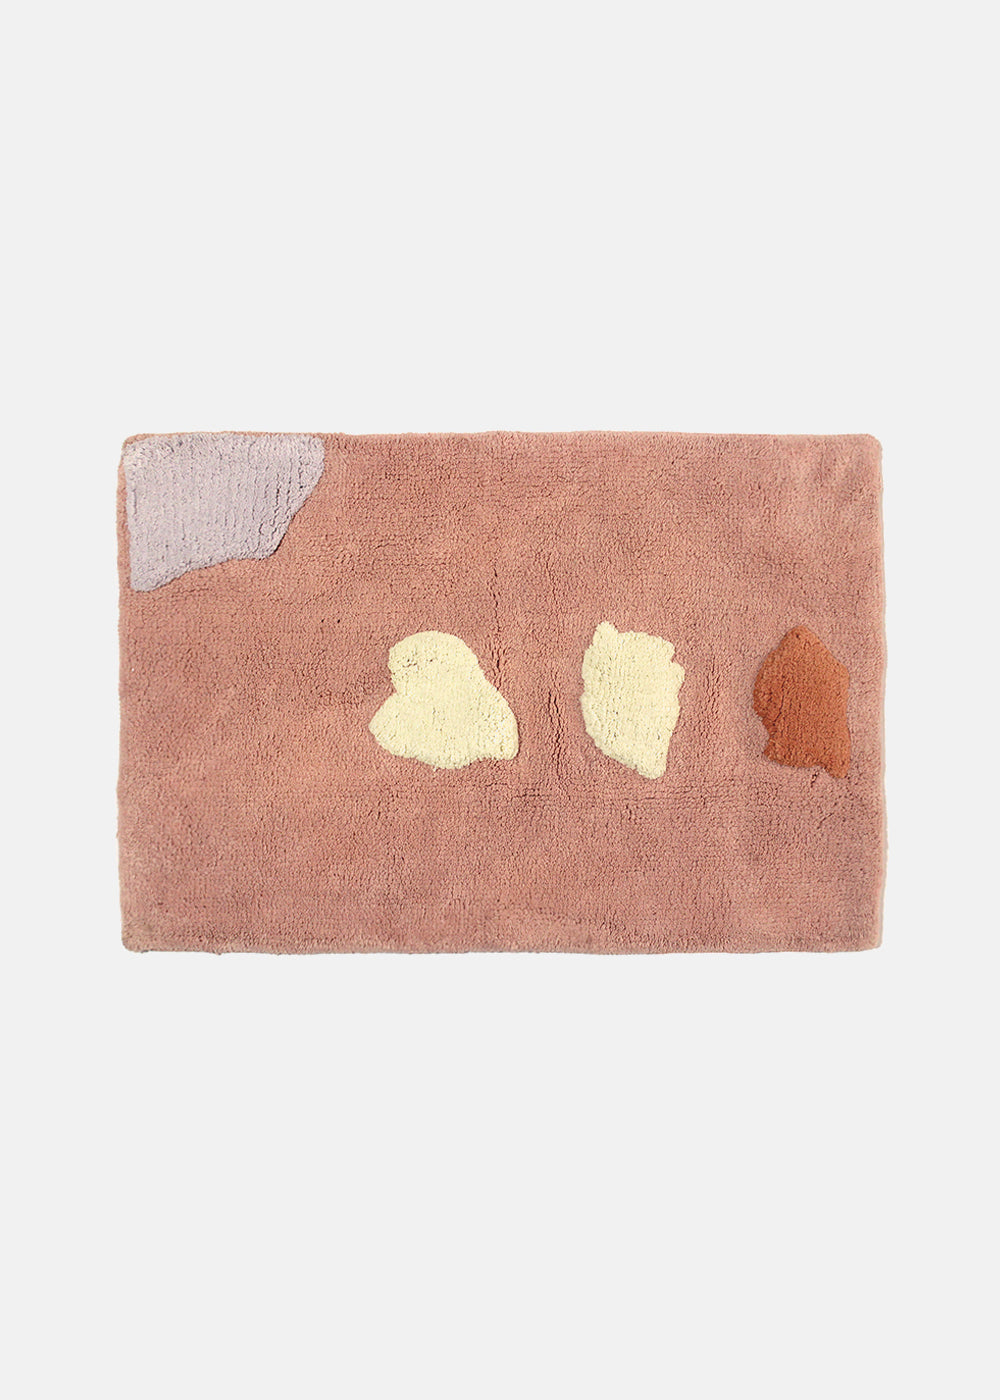 Cold Picnic Islands Bath Mat — Shop sustainable fashion and slow fashion at New Classics Studios